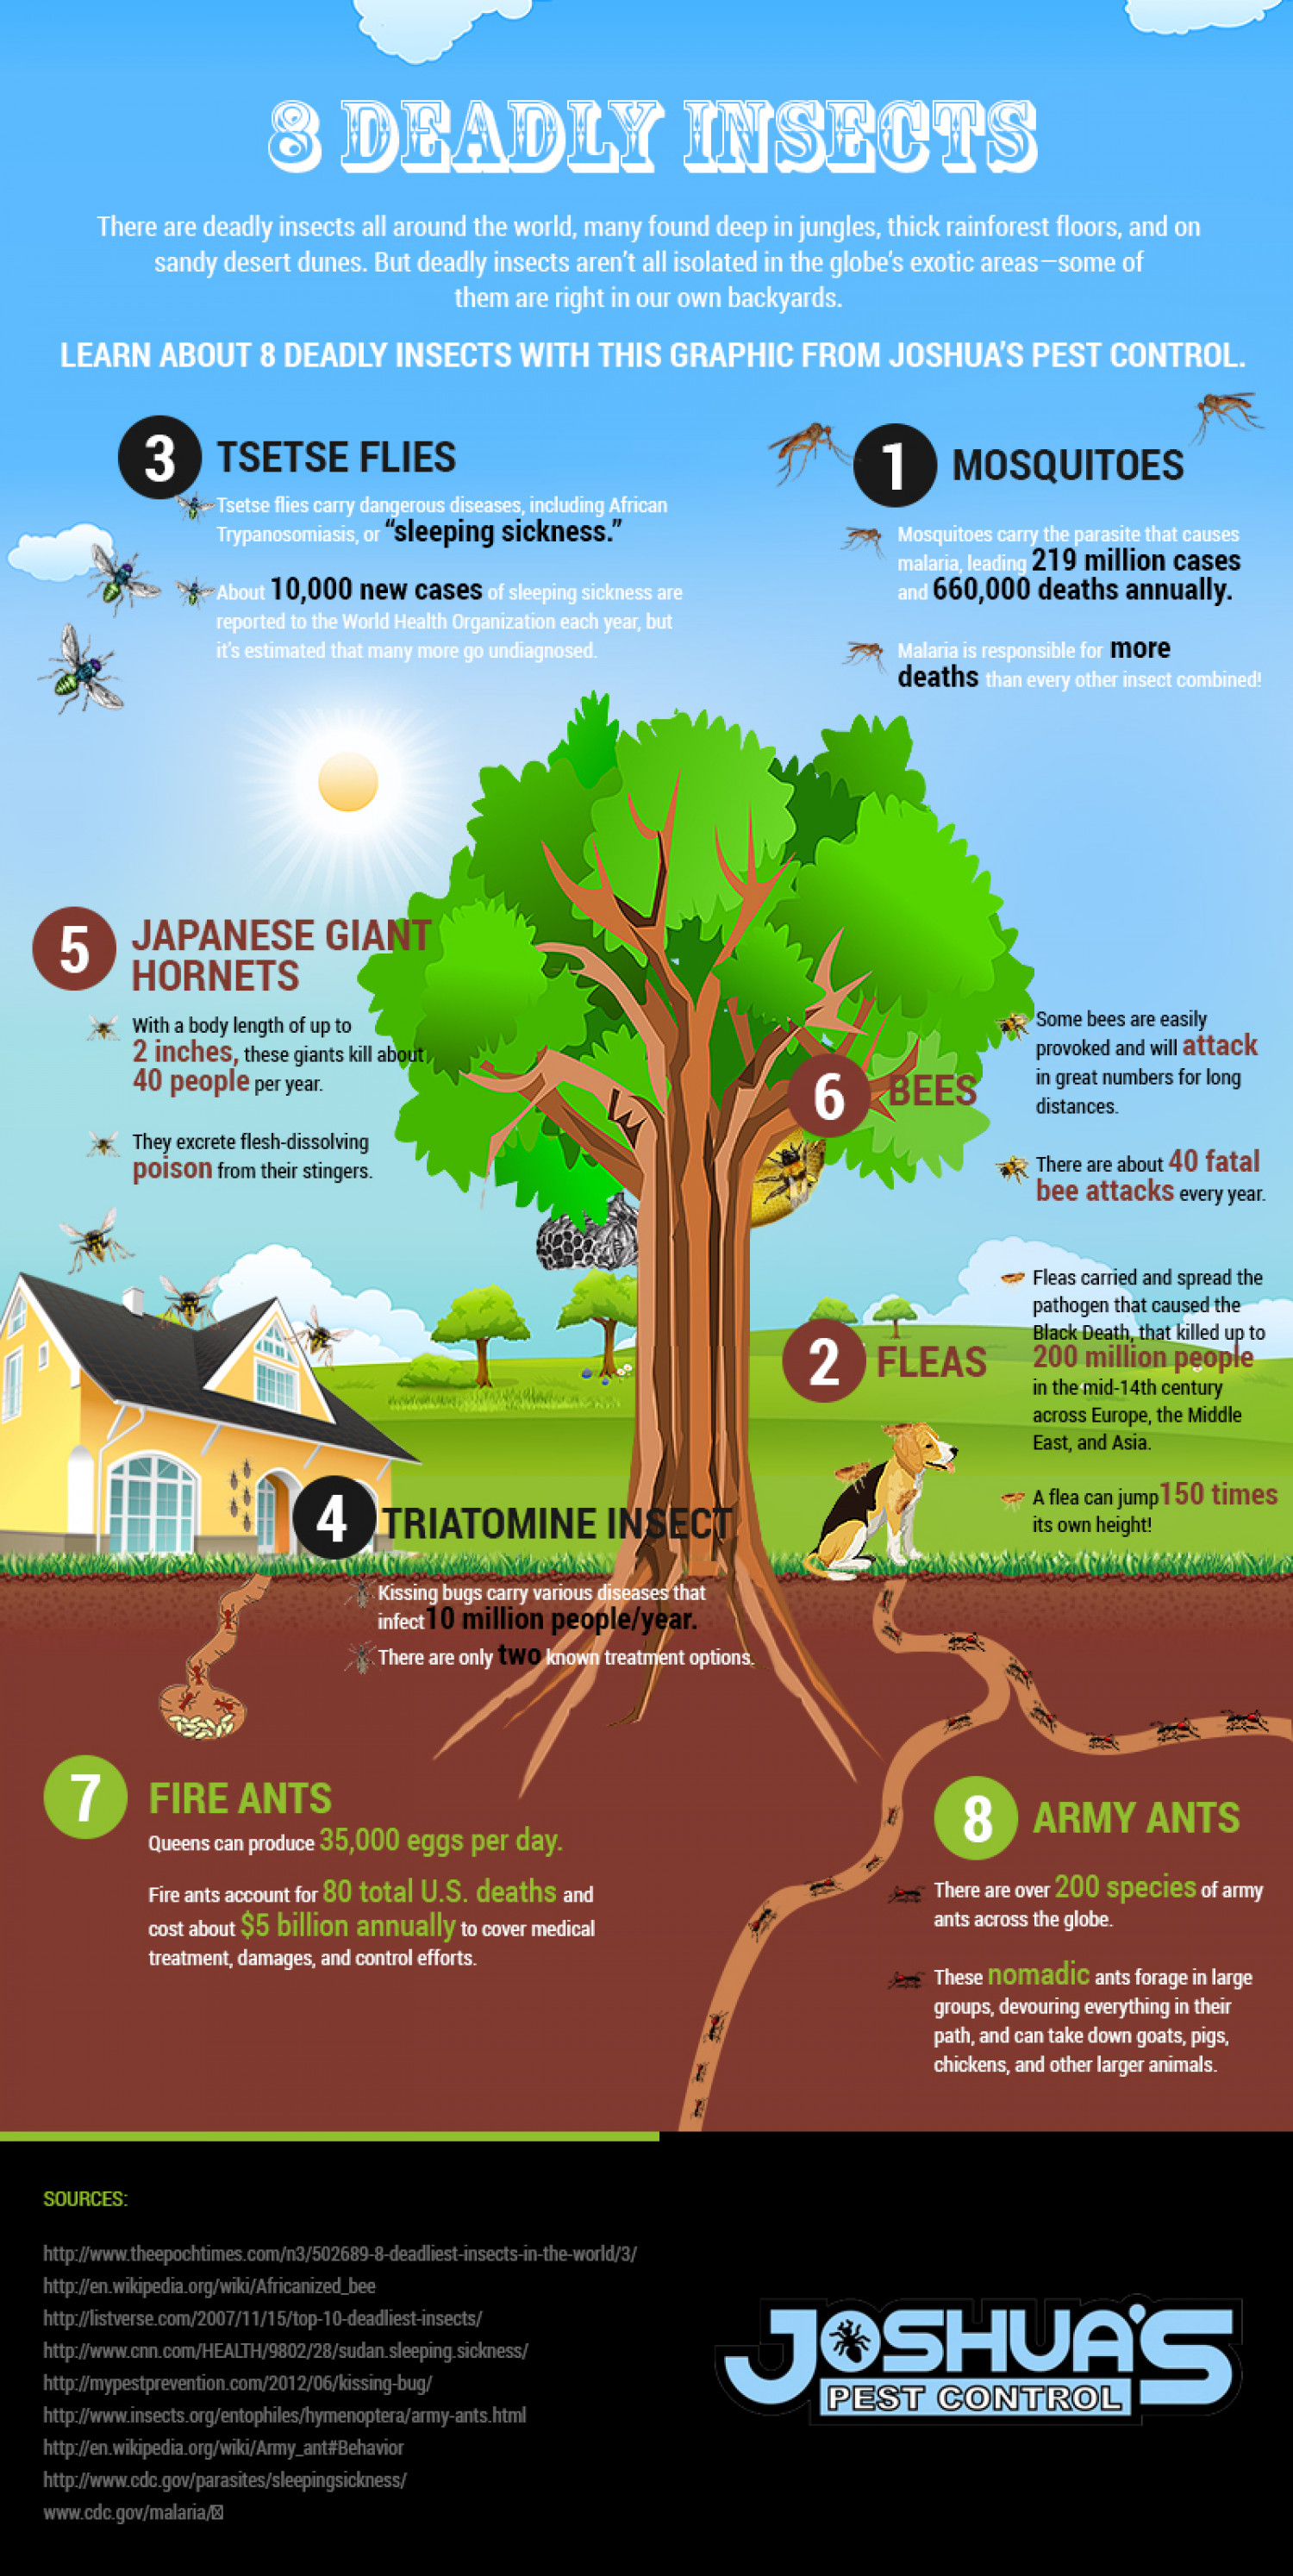 3 Deadly Insects Infographic